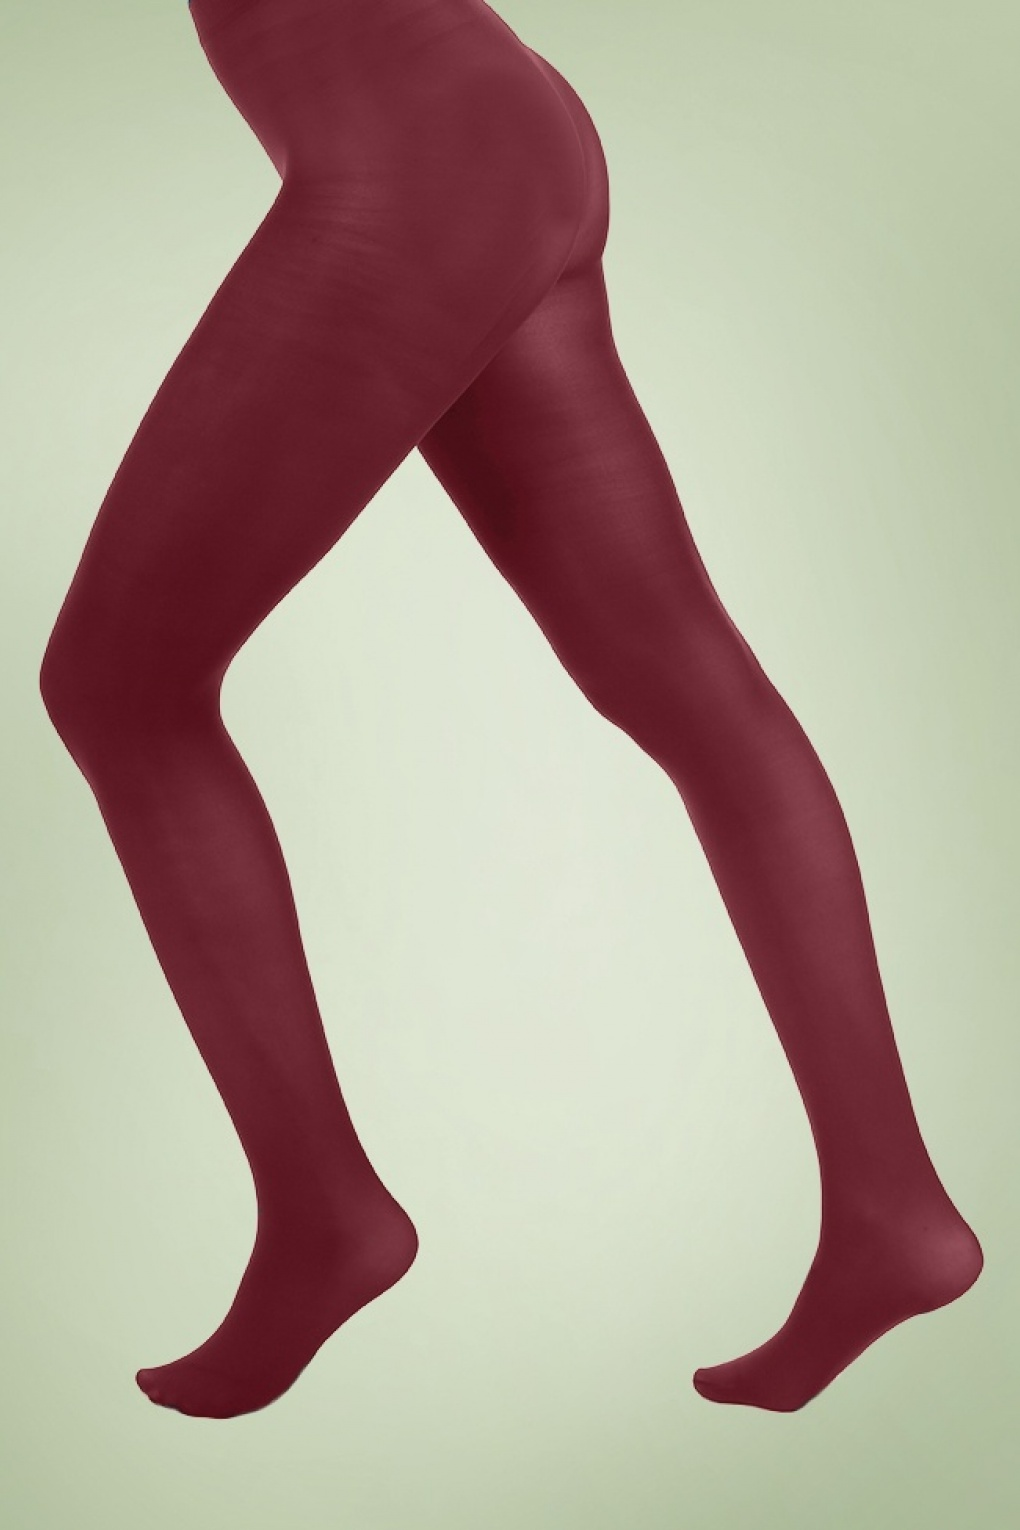 1960s Style Dresses, Clothing, Shoes UK 60s Opaque Tights in Burgundy £8.04 AT vintagedancer.com